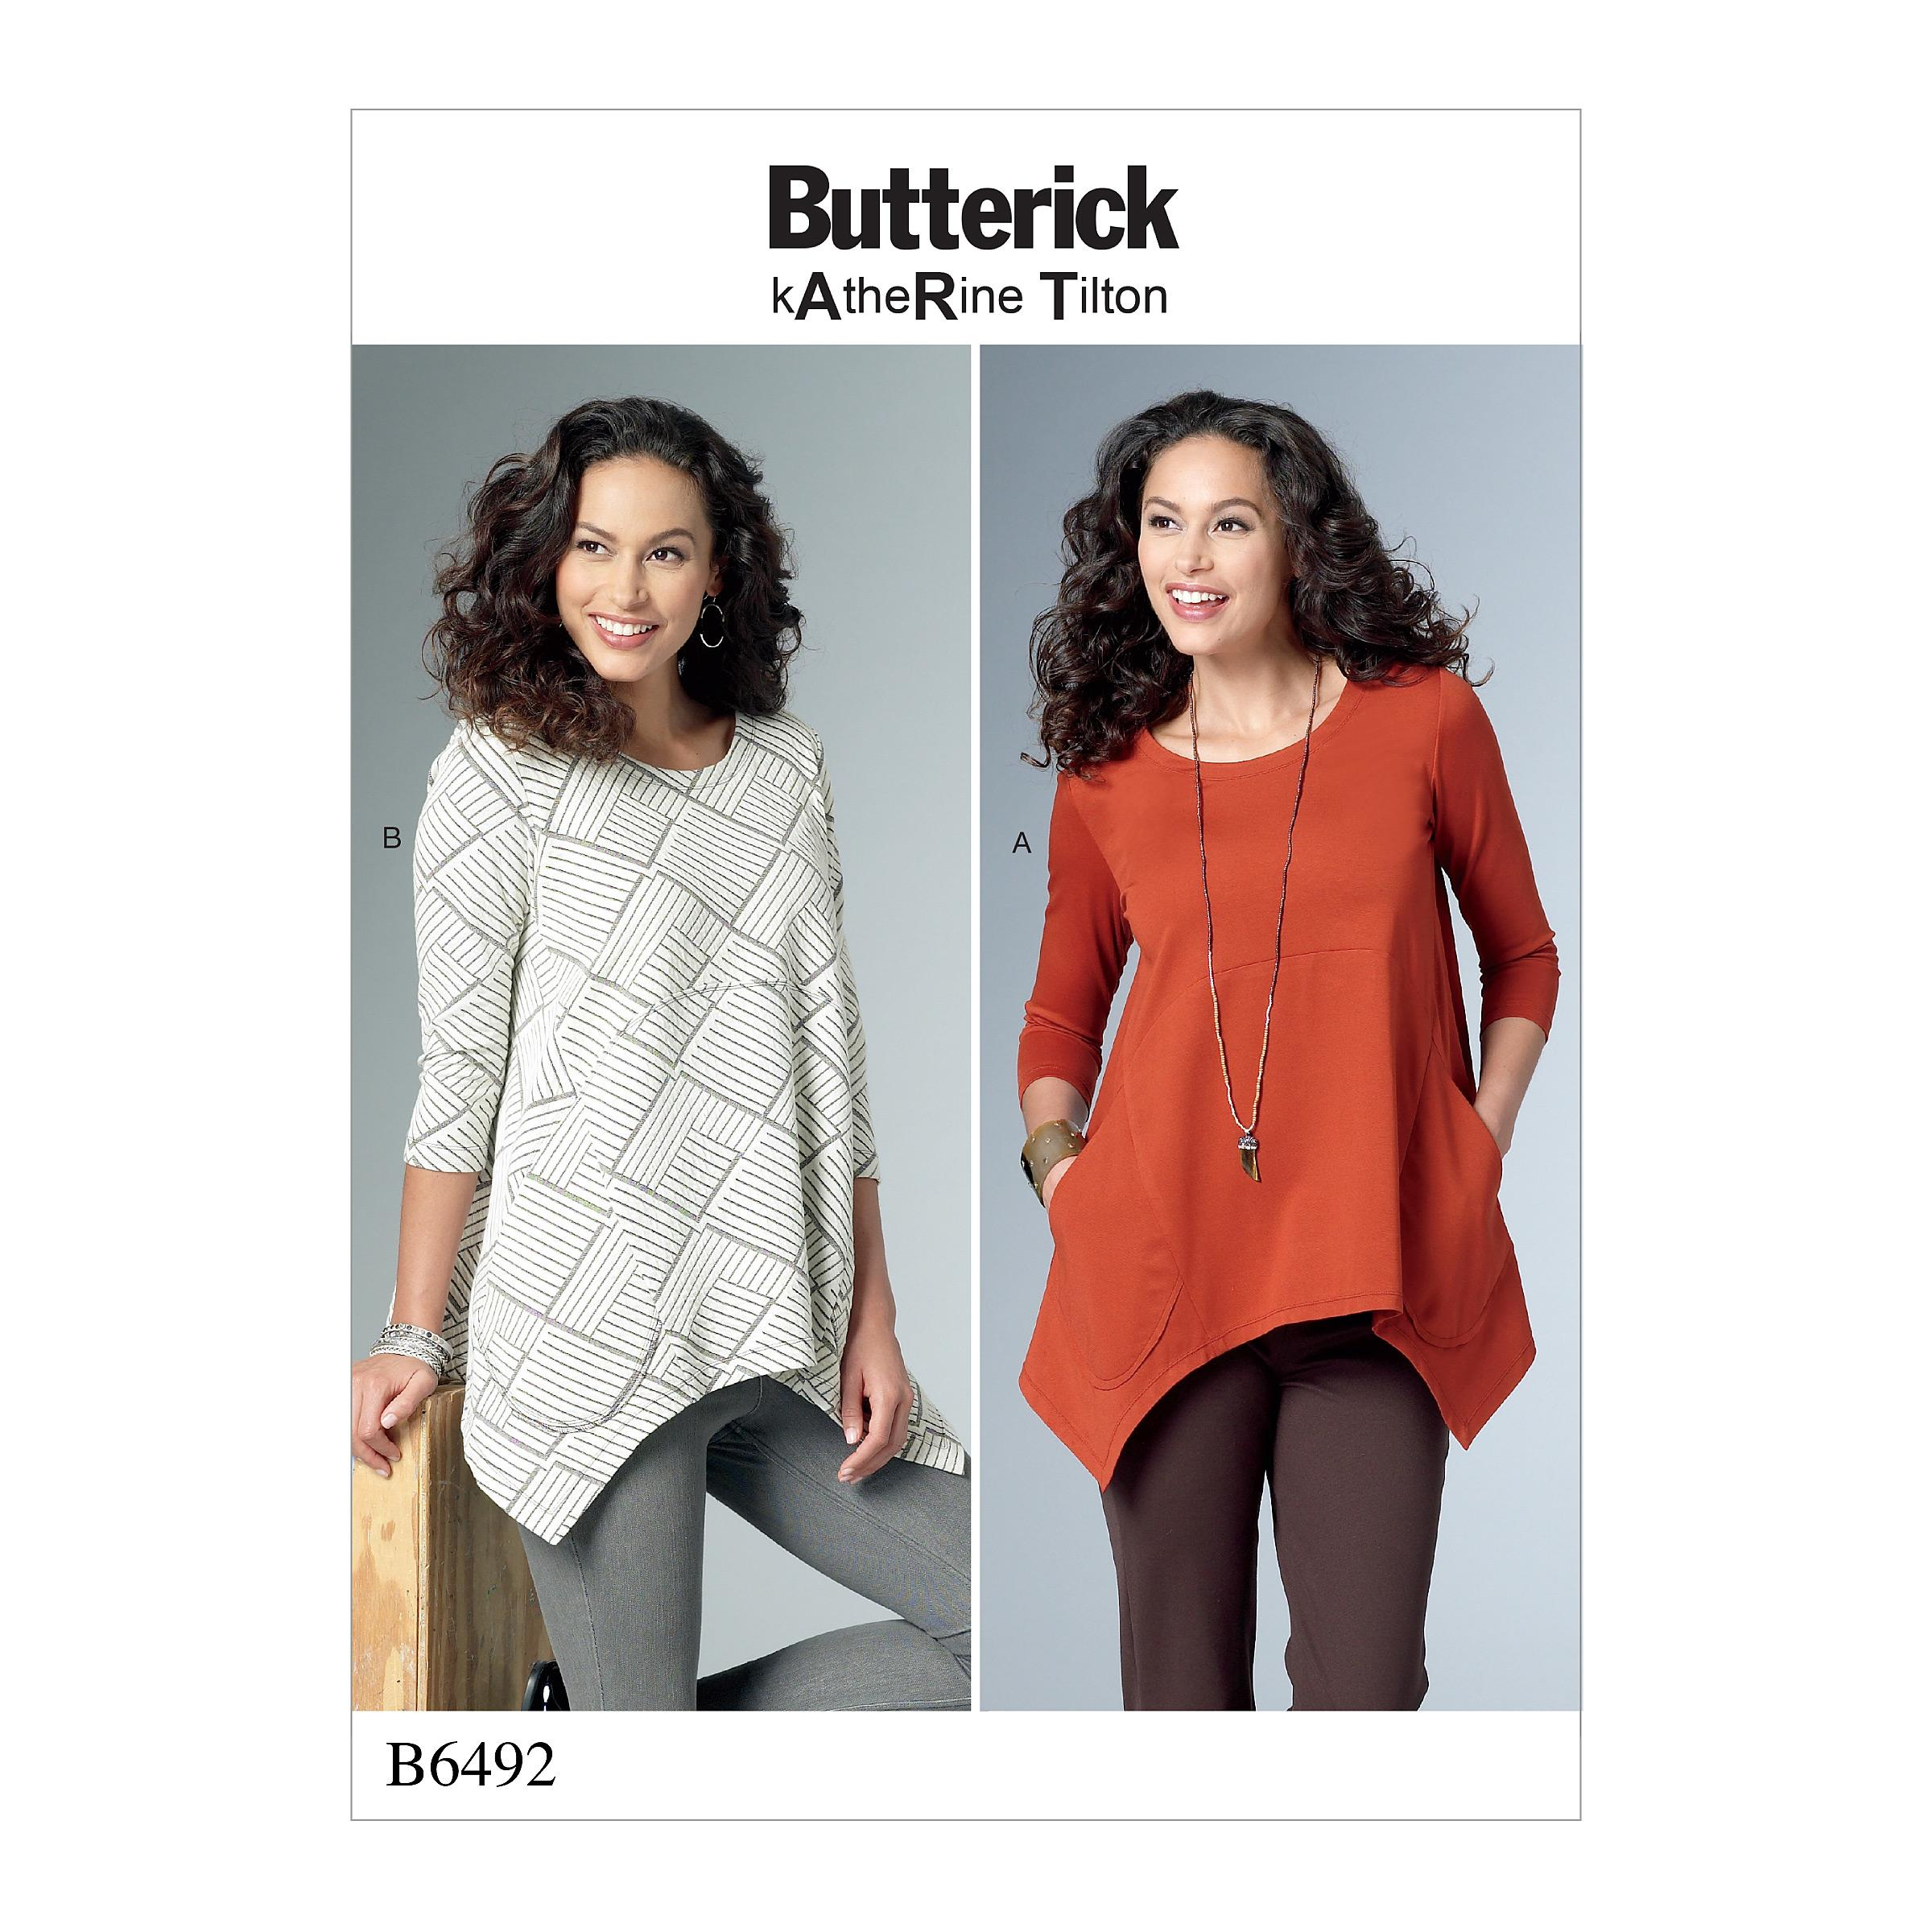 Butterick B6492 Misses' Loose Knit Tunics with Shaped Sides and Pockets